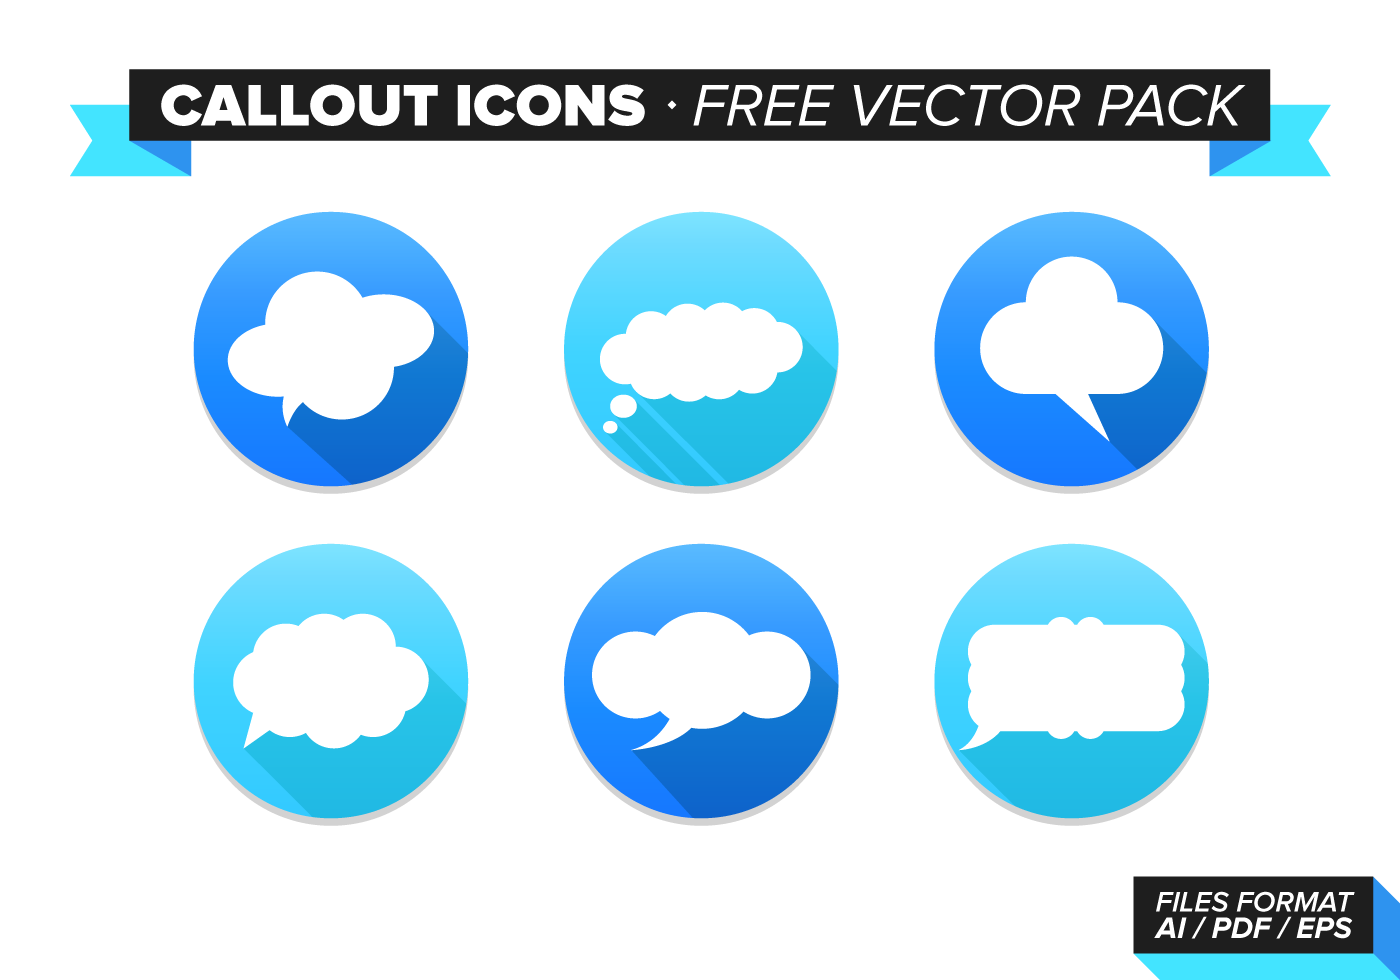 callout icons free vector pack download free vector art